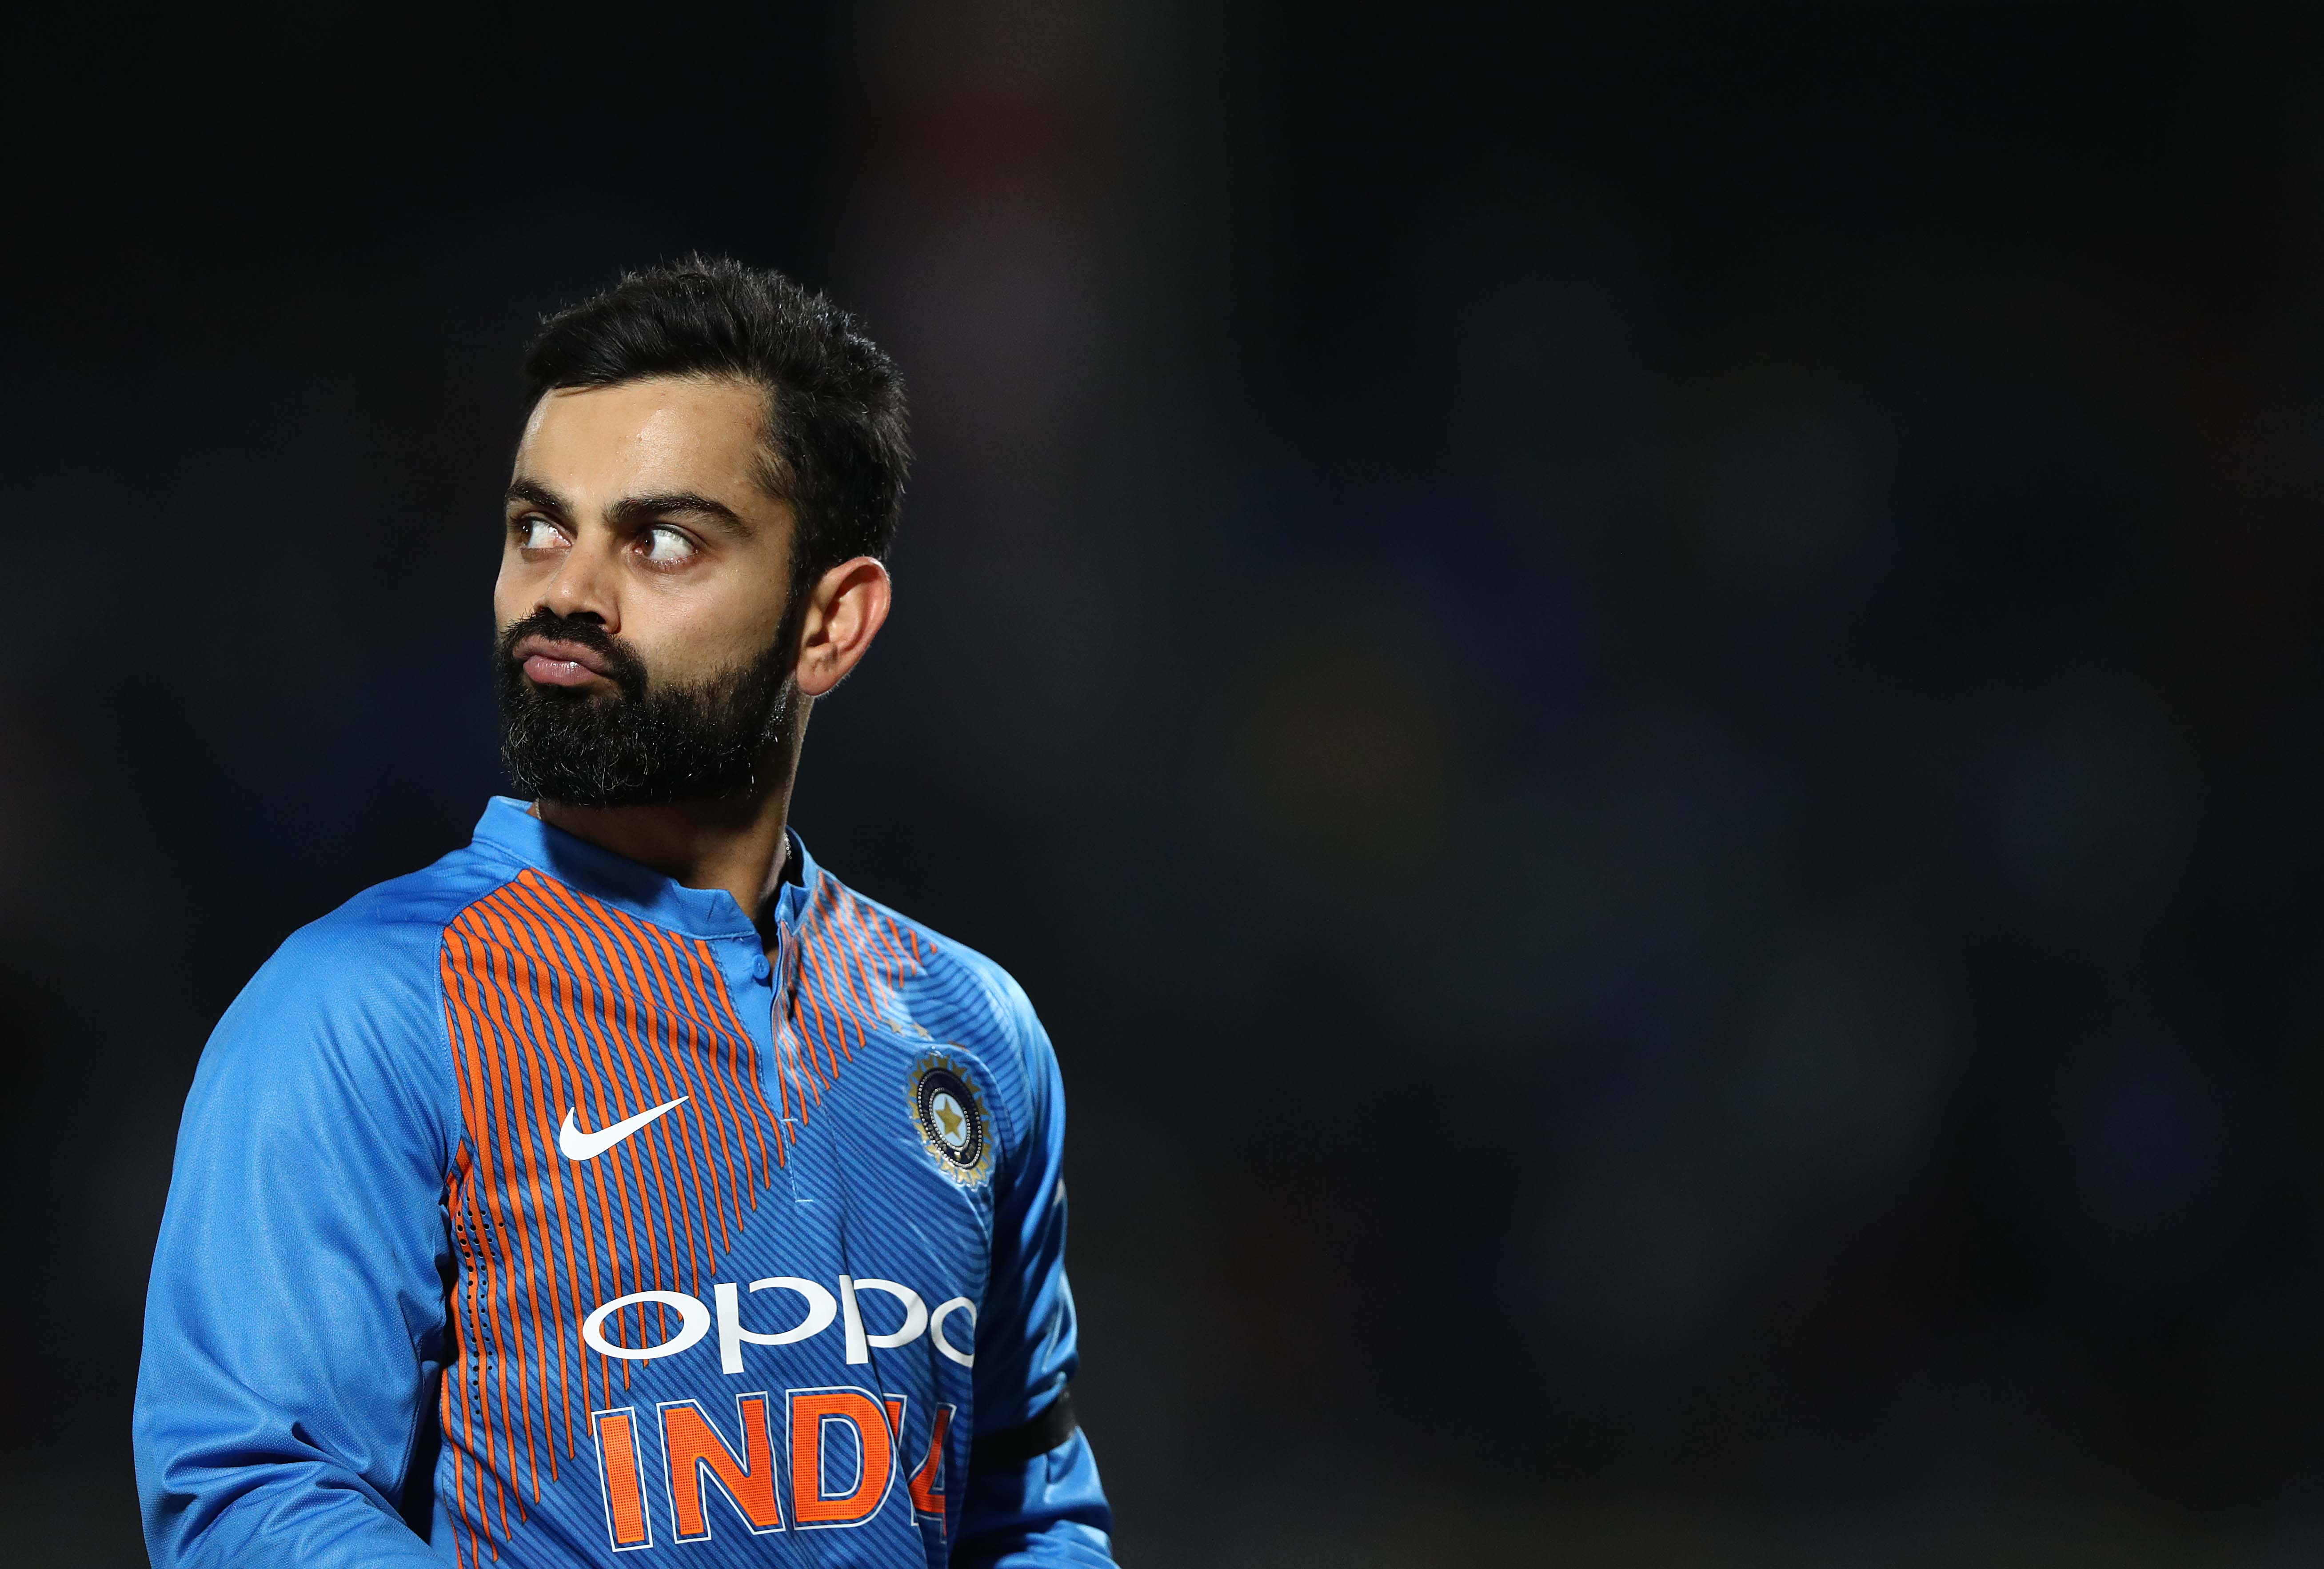 Young talent in focus as Kohli's India seek start to home season